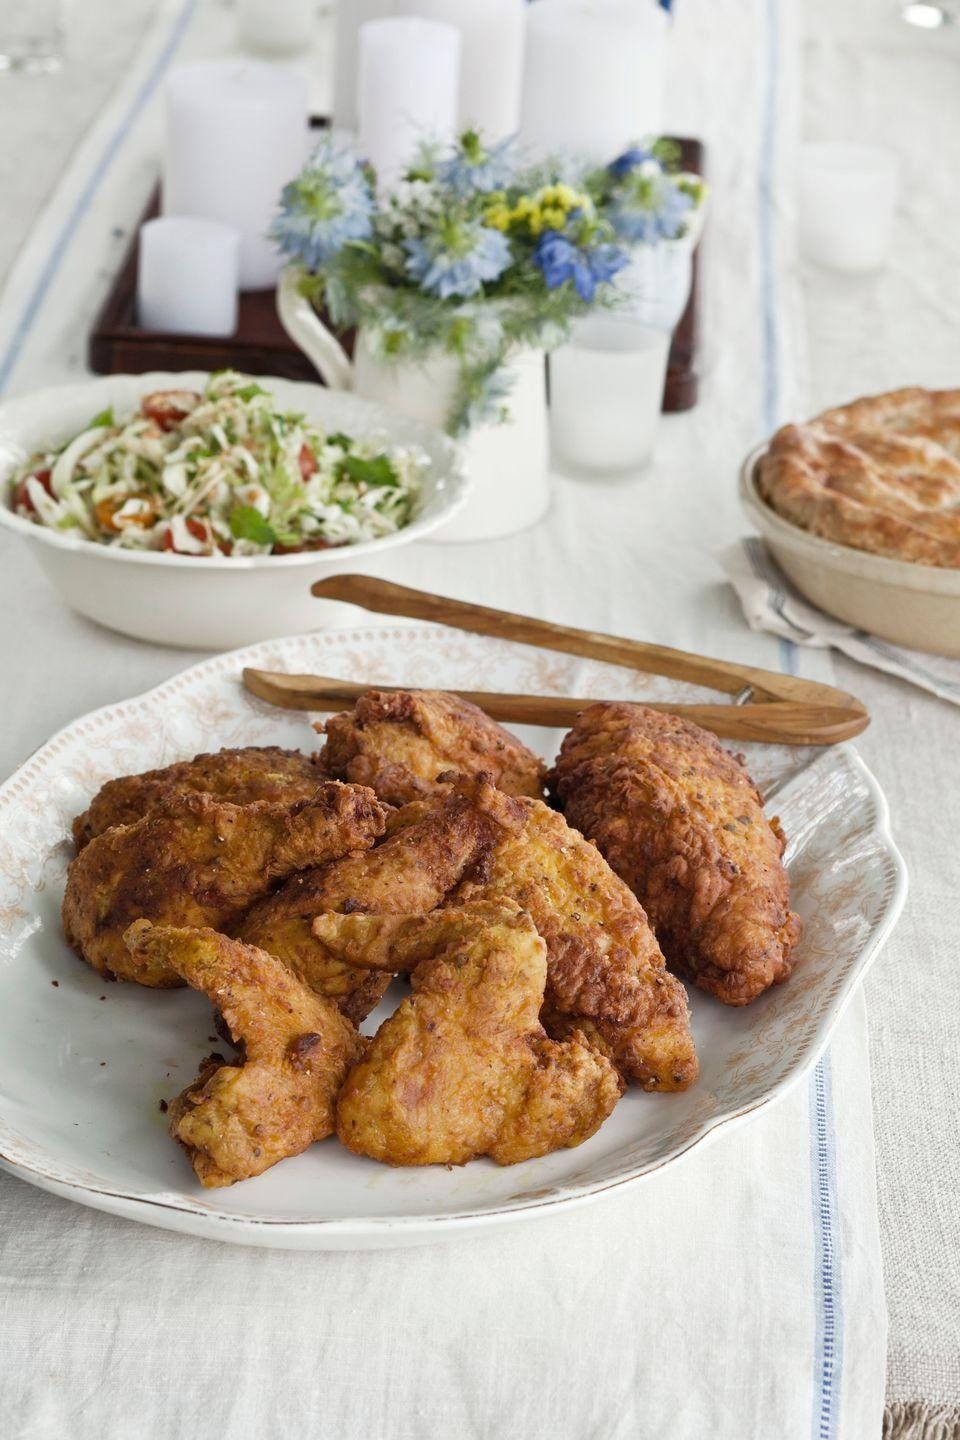 "<p>The fried chicken owes its spice to a buttermilk brine with garam masala, coriander, ginger, and cayenne.</p><p><a href=""https://www.countryliving.com/food-drinks/recipes/a4166/buttermilk-brined-fried-chicken-masala-recipe-clv0712/"" rel=""nofollow noopener"" target=""_blank"" data-ylk=""slk:Get the recipe."" class=""link rapid-noclick-resp""><strong>Get the recipe.</strong></a></p>"